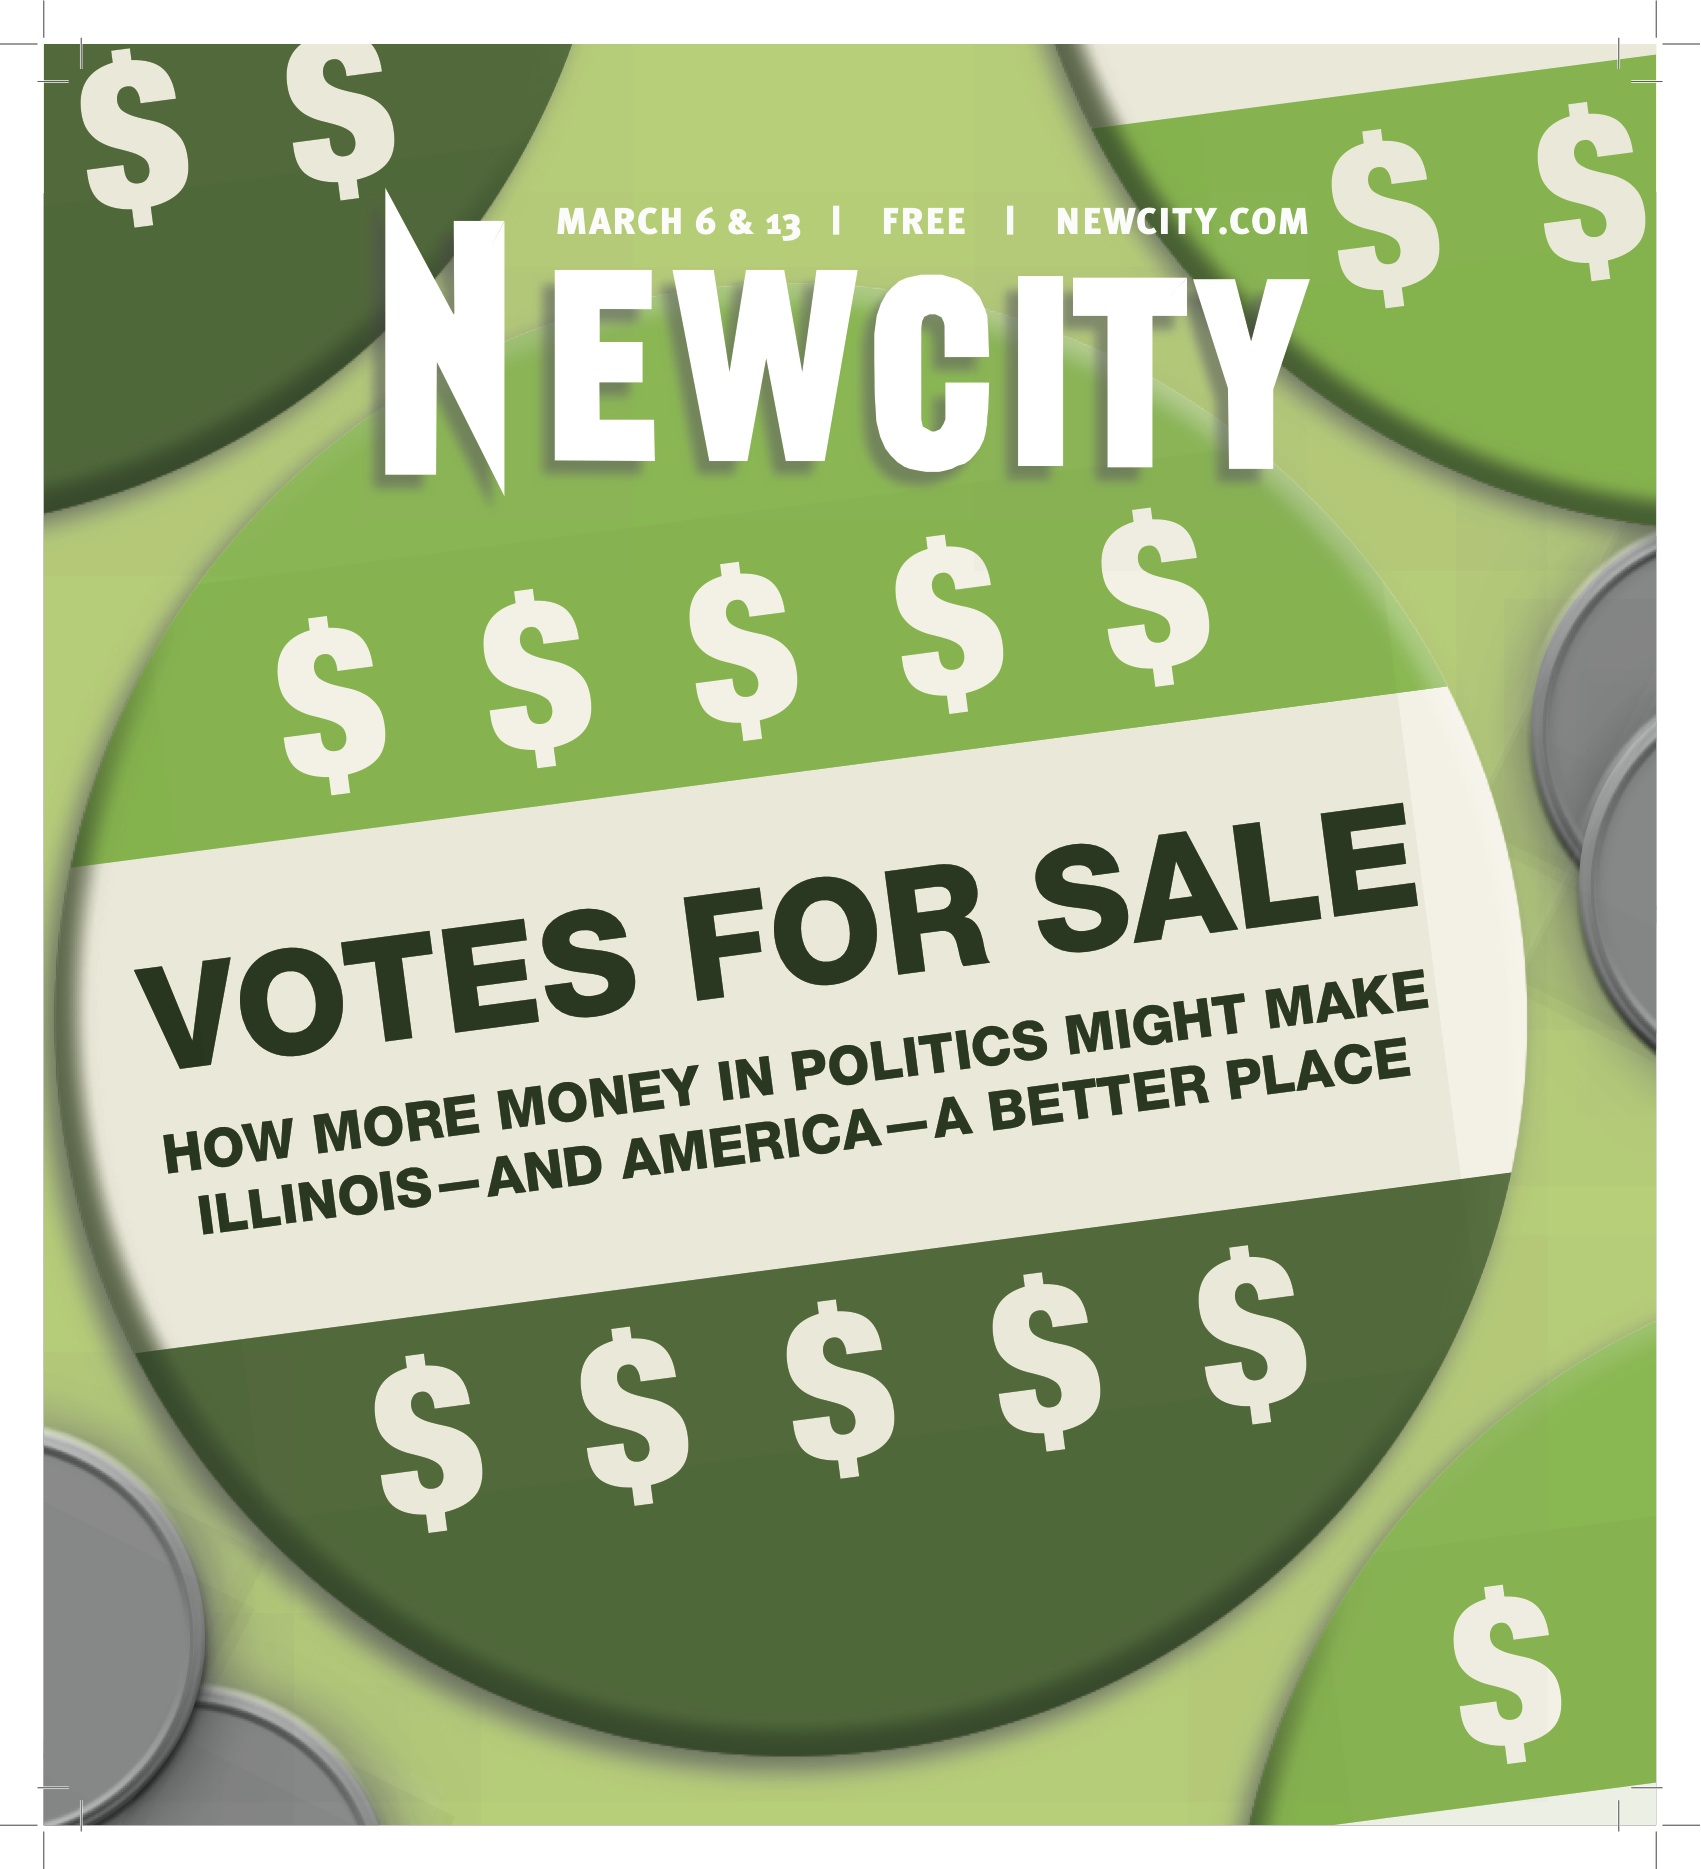 Votes for Sale: How More Money in Politics Might Make Illinois—and America—A Better Place